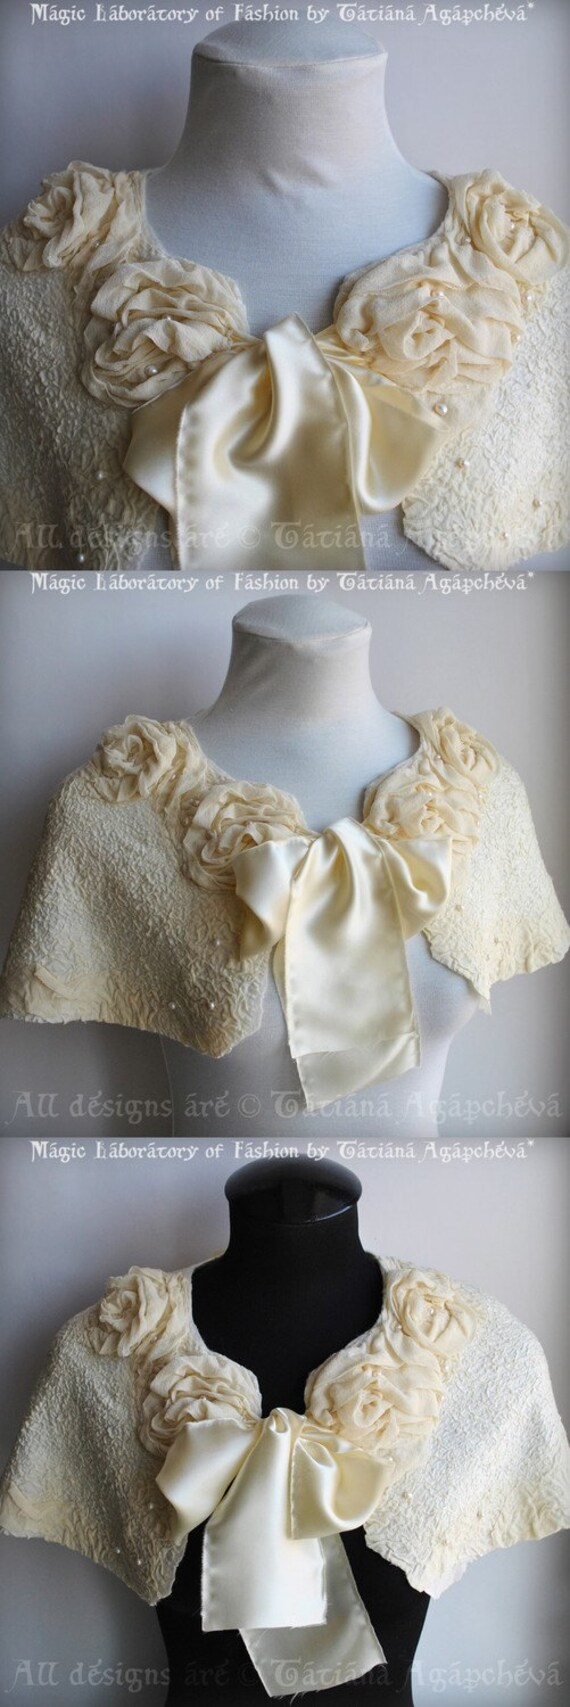 Wedding Capelet, Cape, Shawl, Caplet, 30% OFF, Free Shipping, Merino, Chiffon, Habotai, Charmeuse, Roses, Genuine Pearls, White or Ecru